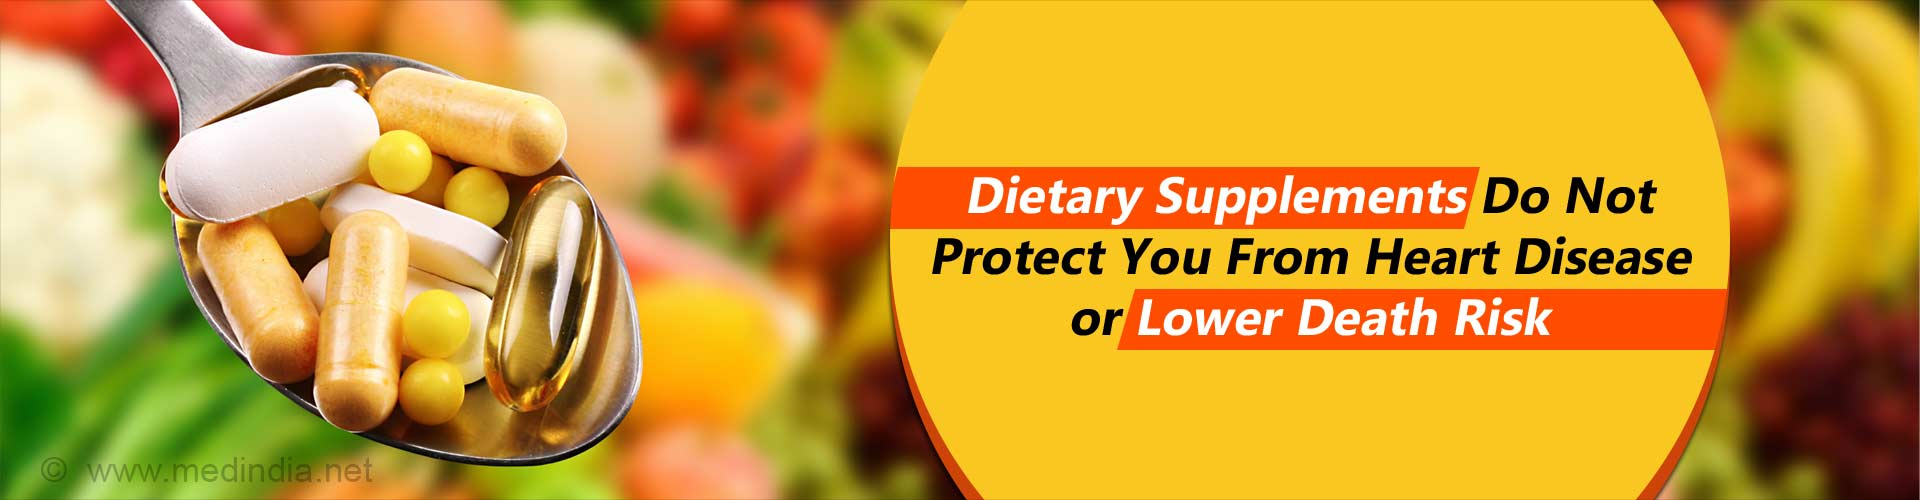 Most Dietary Supplements are 'Not' Heart-healthy